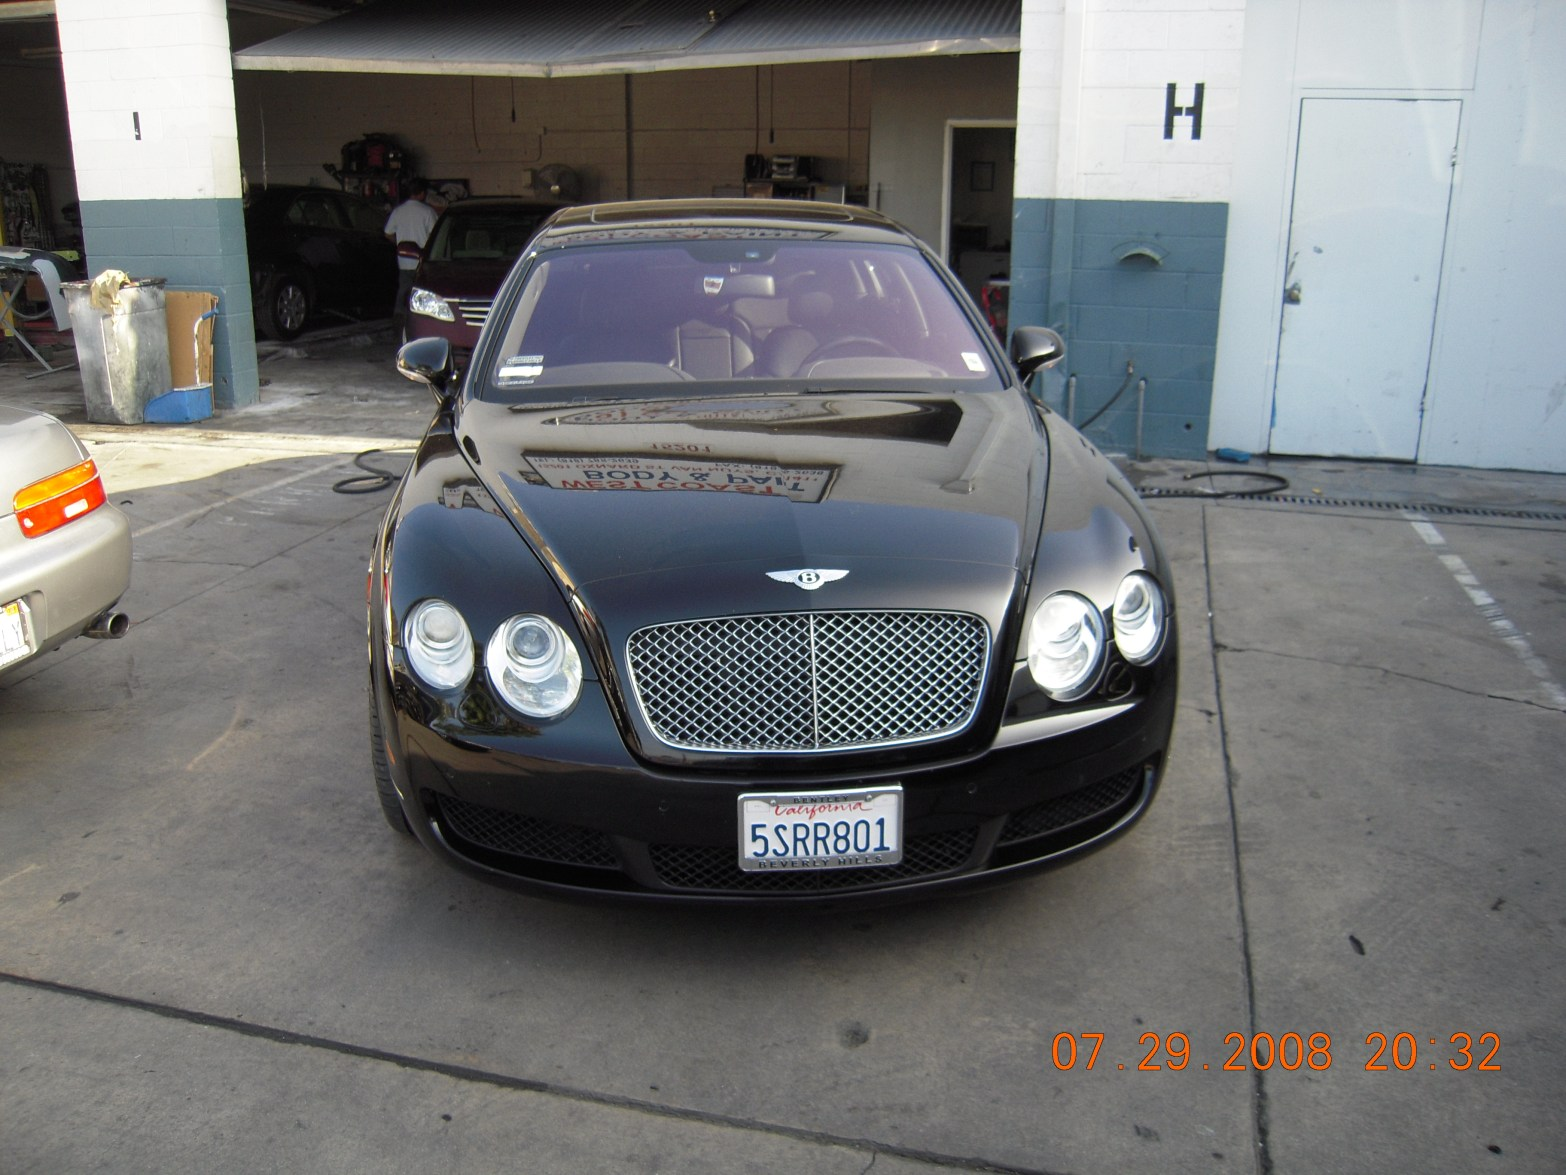 west-coast-body-and-paint-black-bentley-5